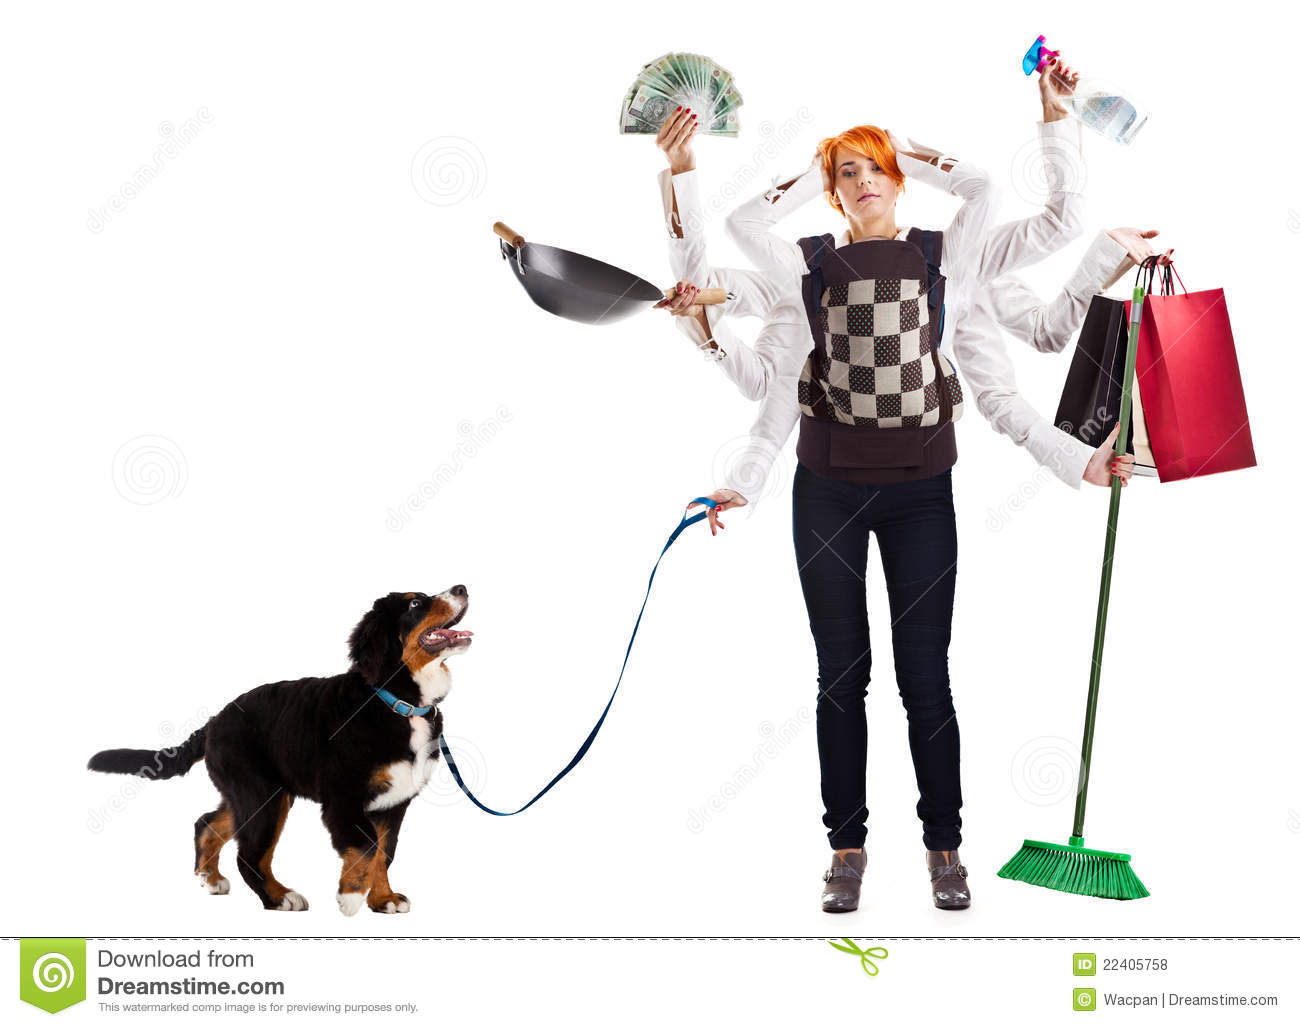 Modern housewife royalty free stock photos image 22405758 for Modern housewife